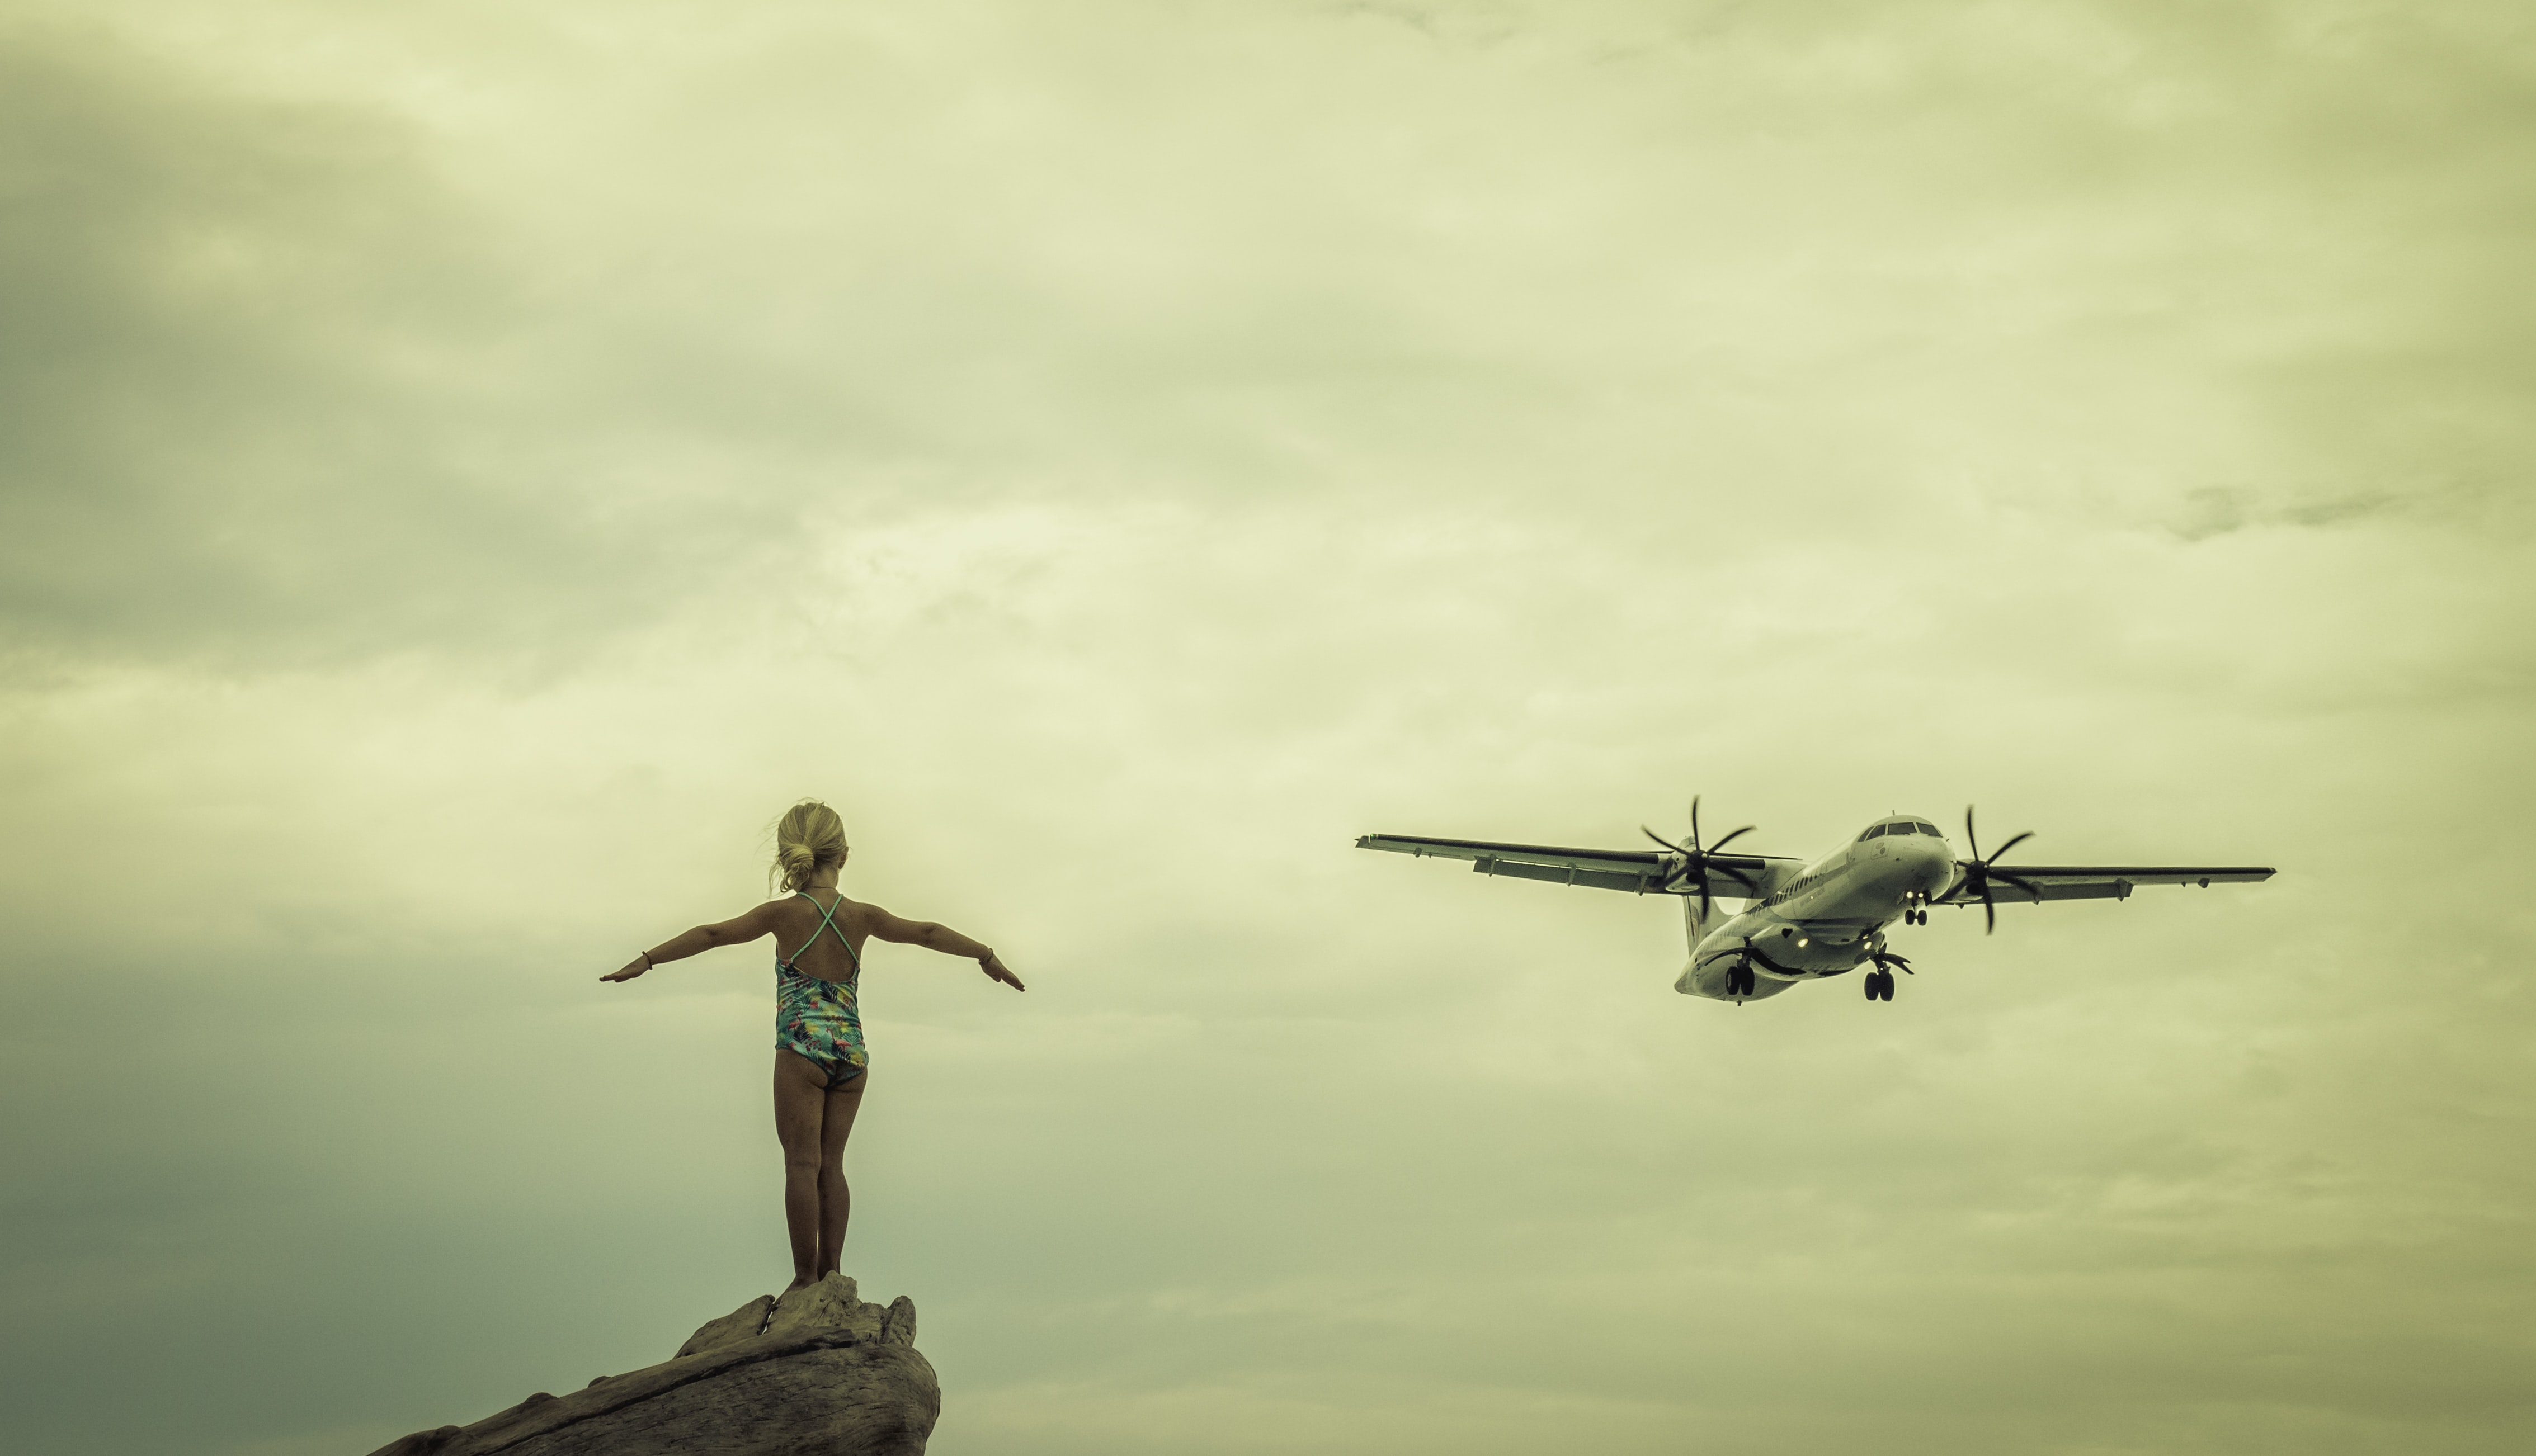 girl standing on cliff under cloudy sky with airplane on flight